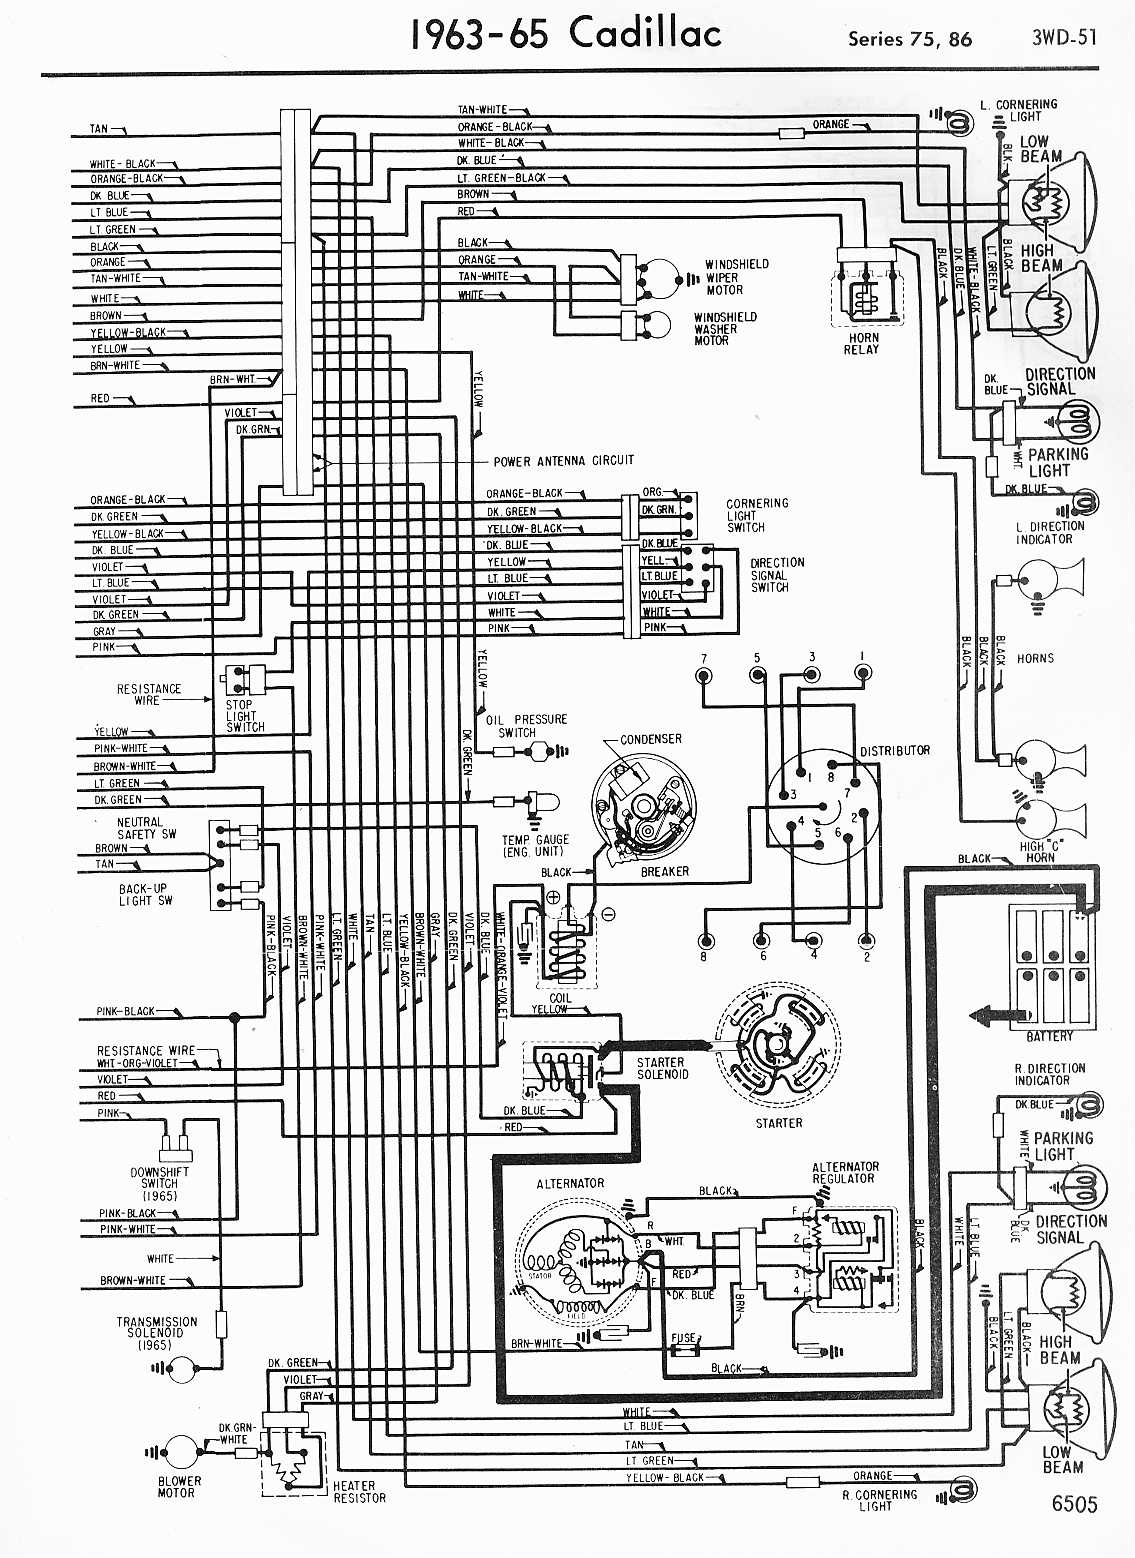 1955 cadillac series 62 wiring diagram example electrical wiring rh olkha co 1964 Cadillac Series 62 1953 Cadillac Series 62